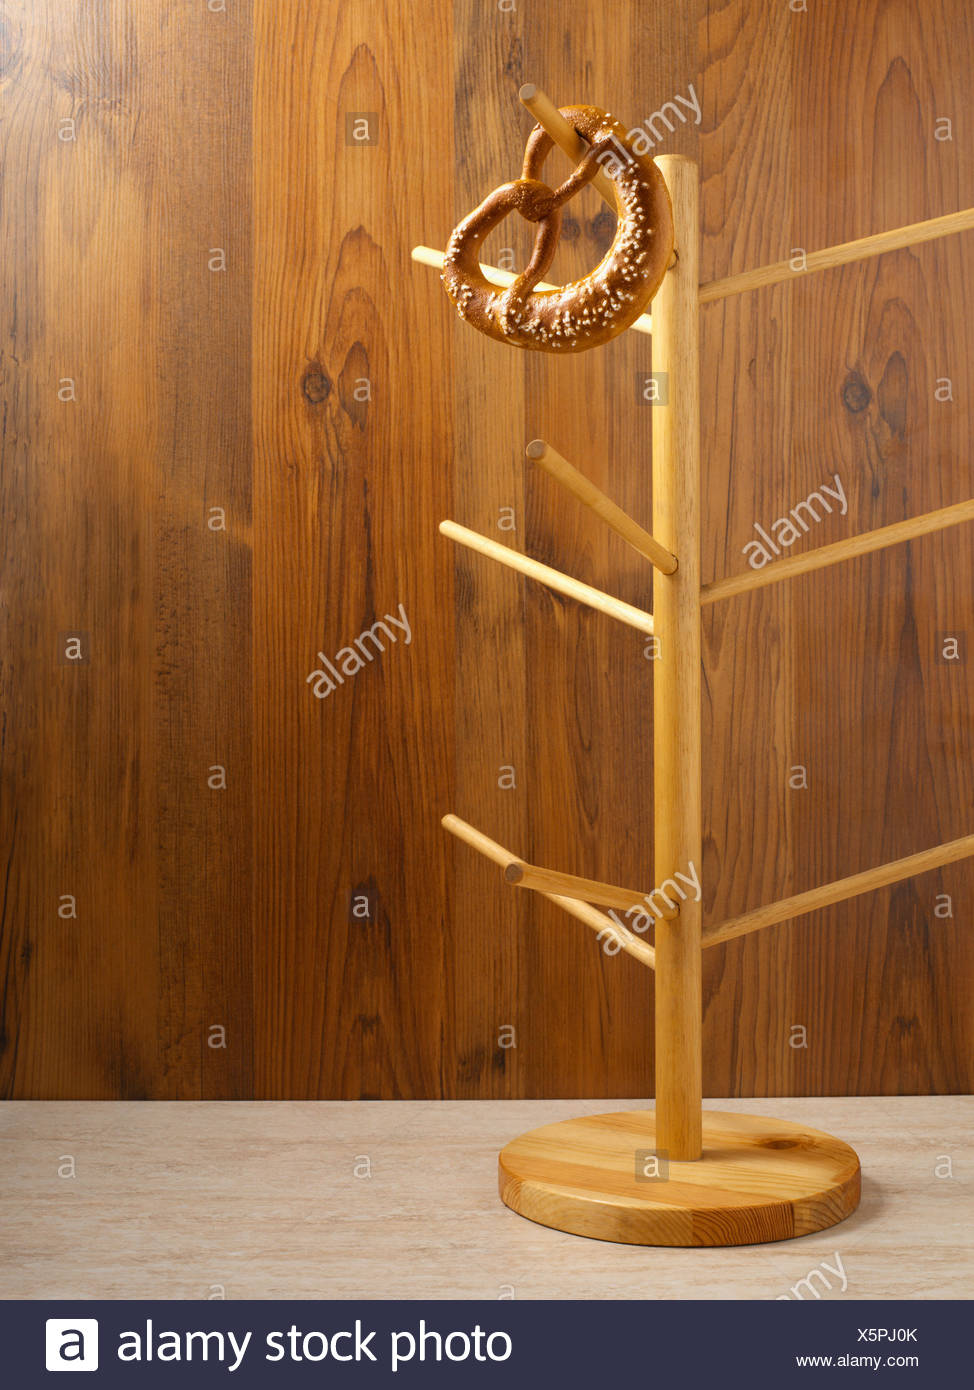 Bagel left on a stand - Stock Image